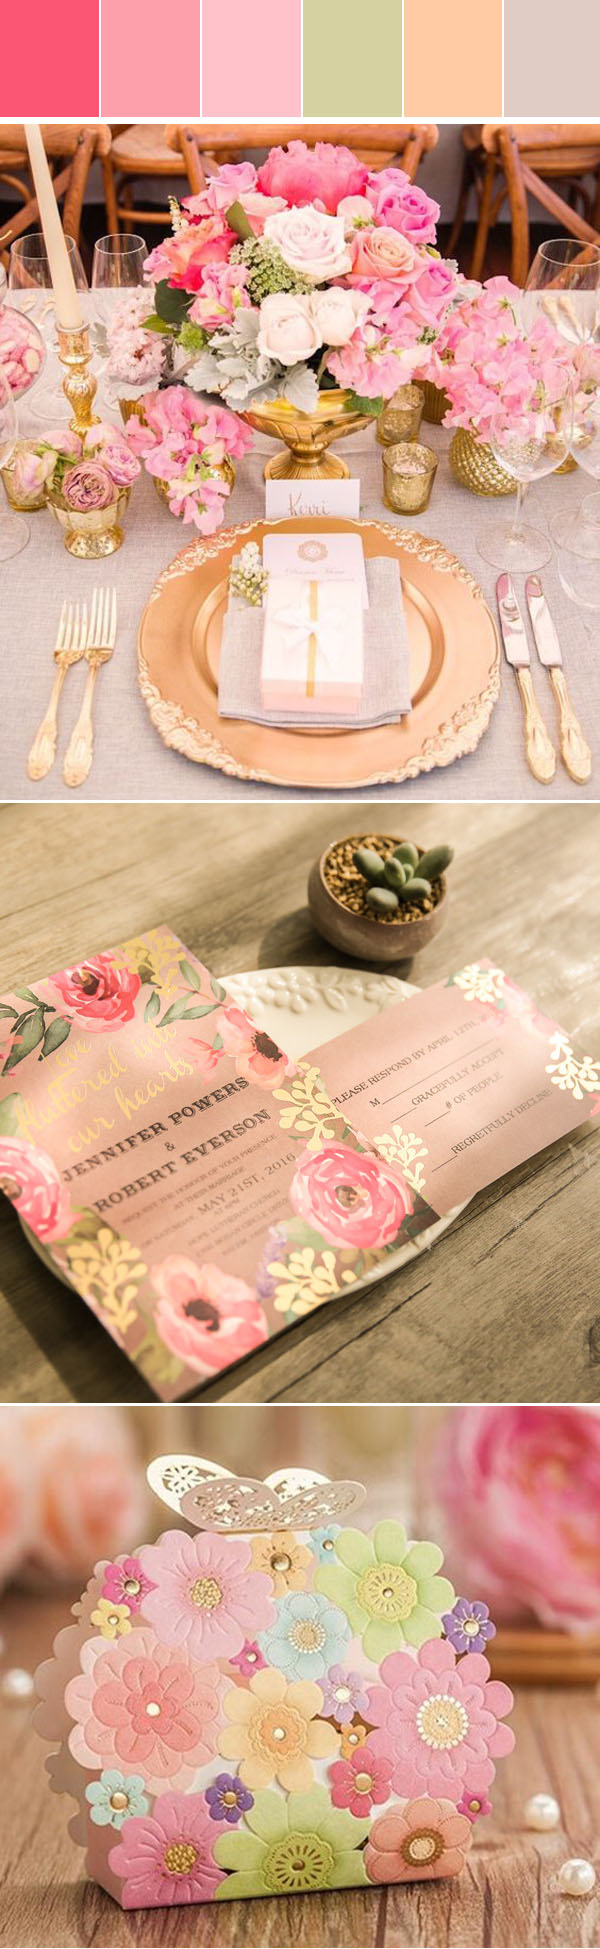 Five Pretty Summer Wedding Colors In shade of Gold with Matched Foil Invitations